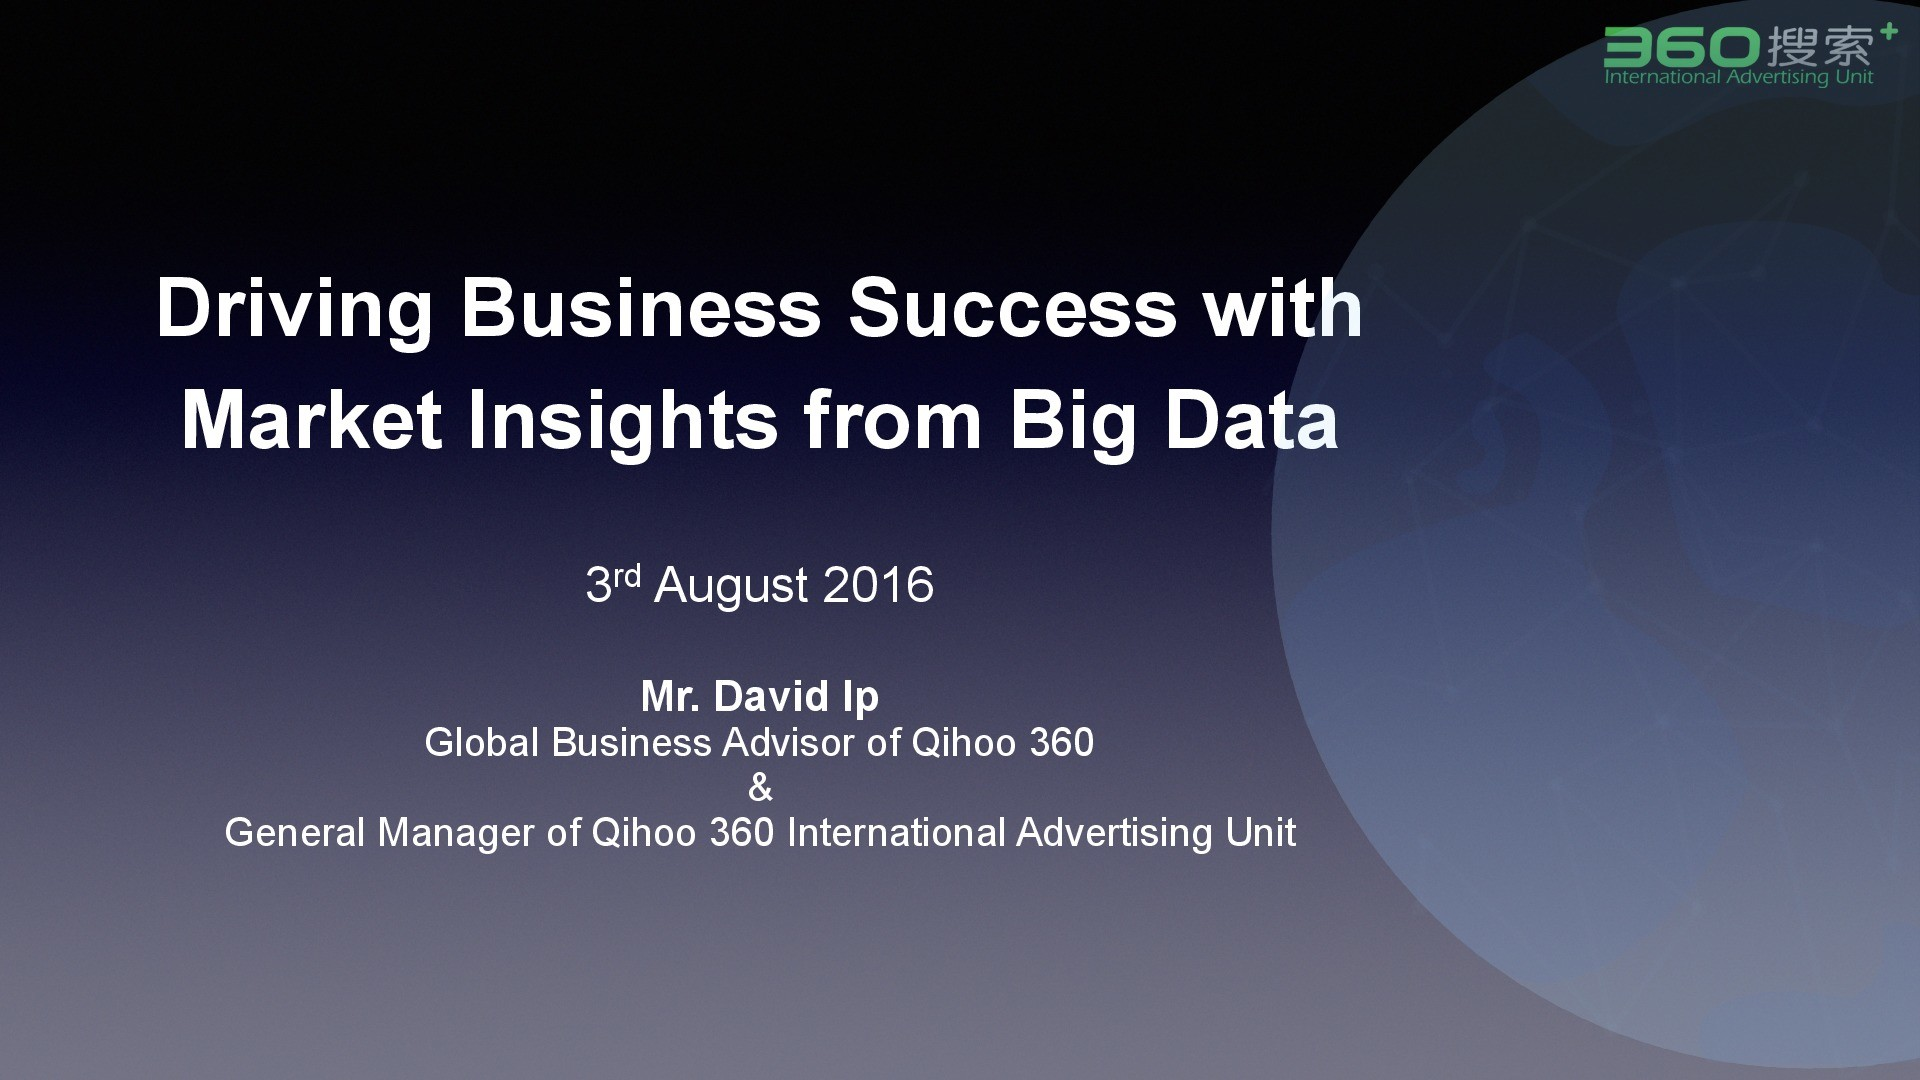 Driving Business Success with Market Insights from Big Data presentation image